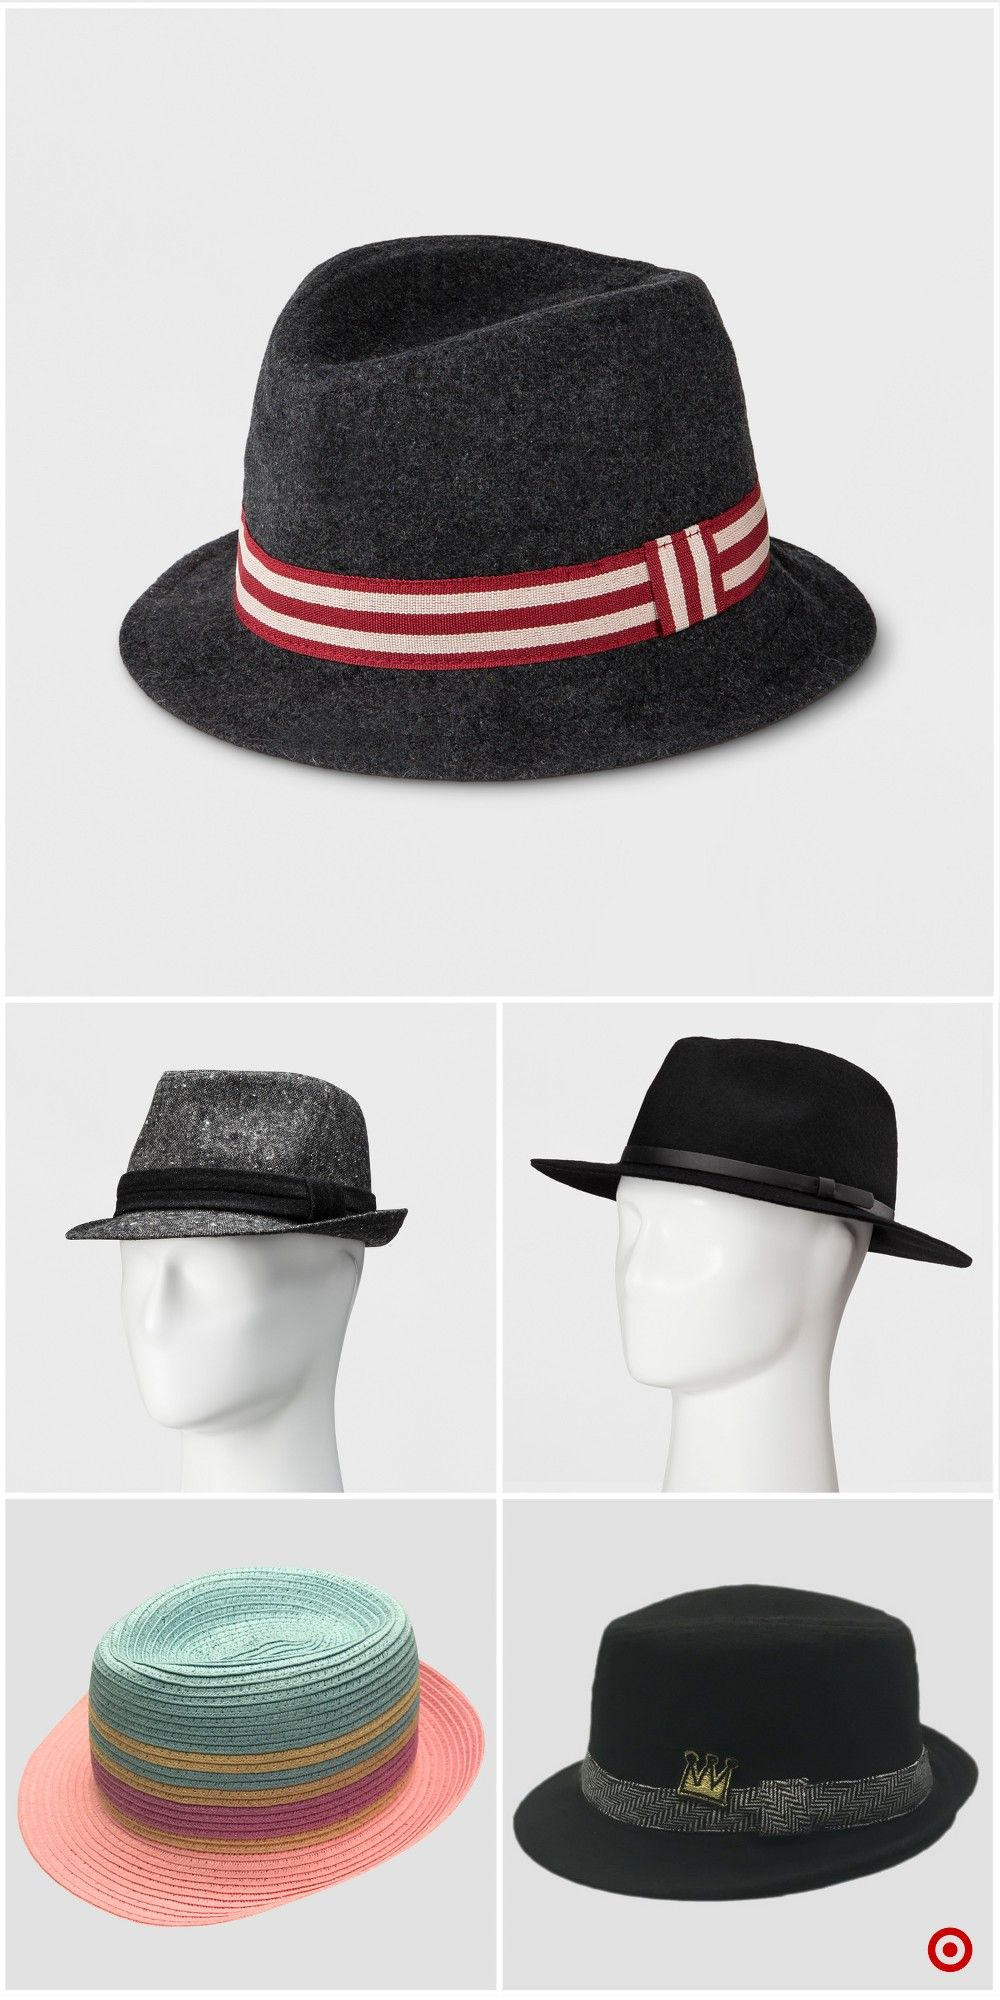 869c7ac129 Shop Target for fedoras you will love at great low prices. Free shipping on  orders of  35+ or free same-day pick-up in store.